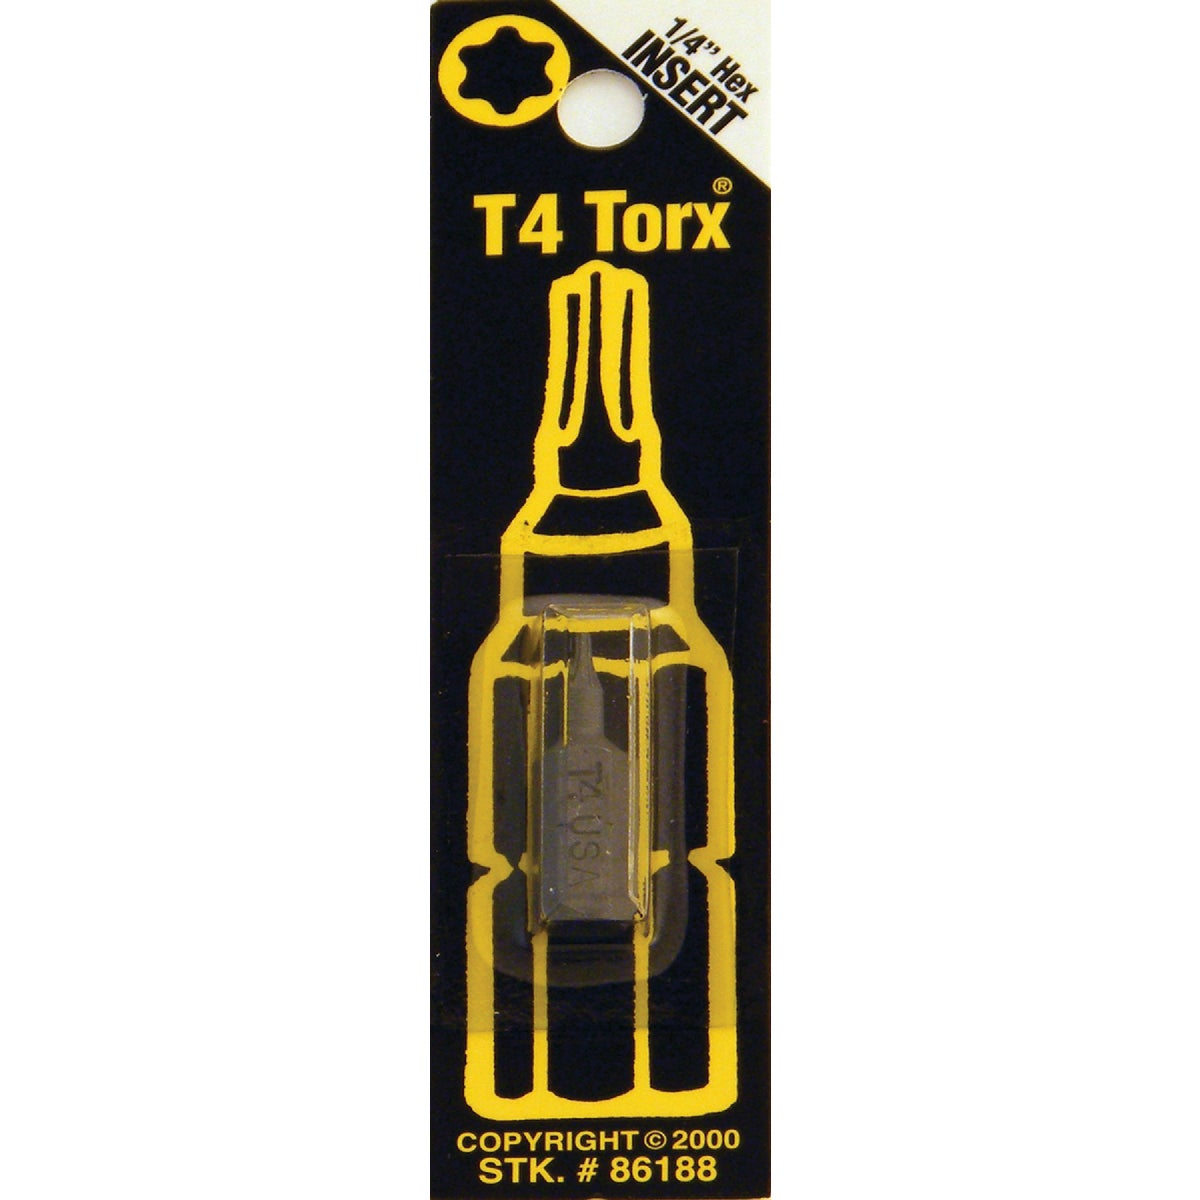 T4 TORX SECURITY BIT - 86188 by Bwt Inc